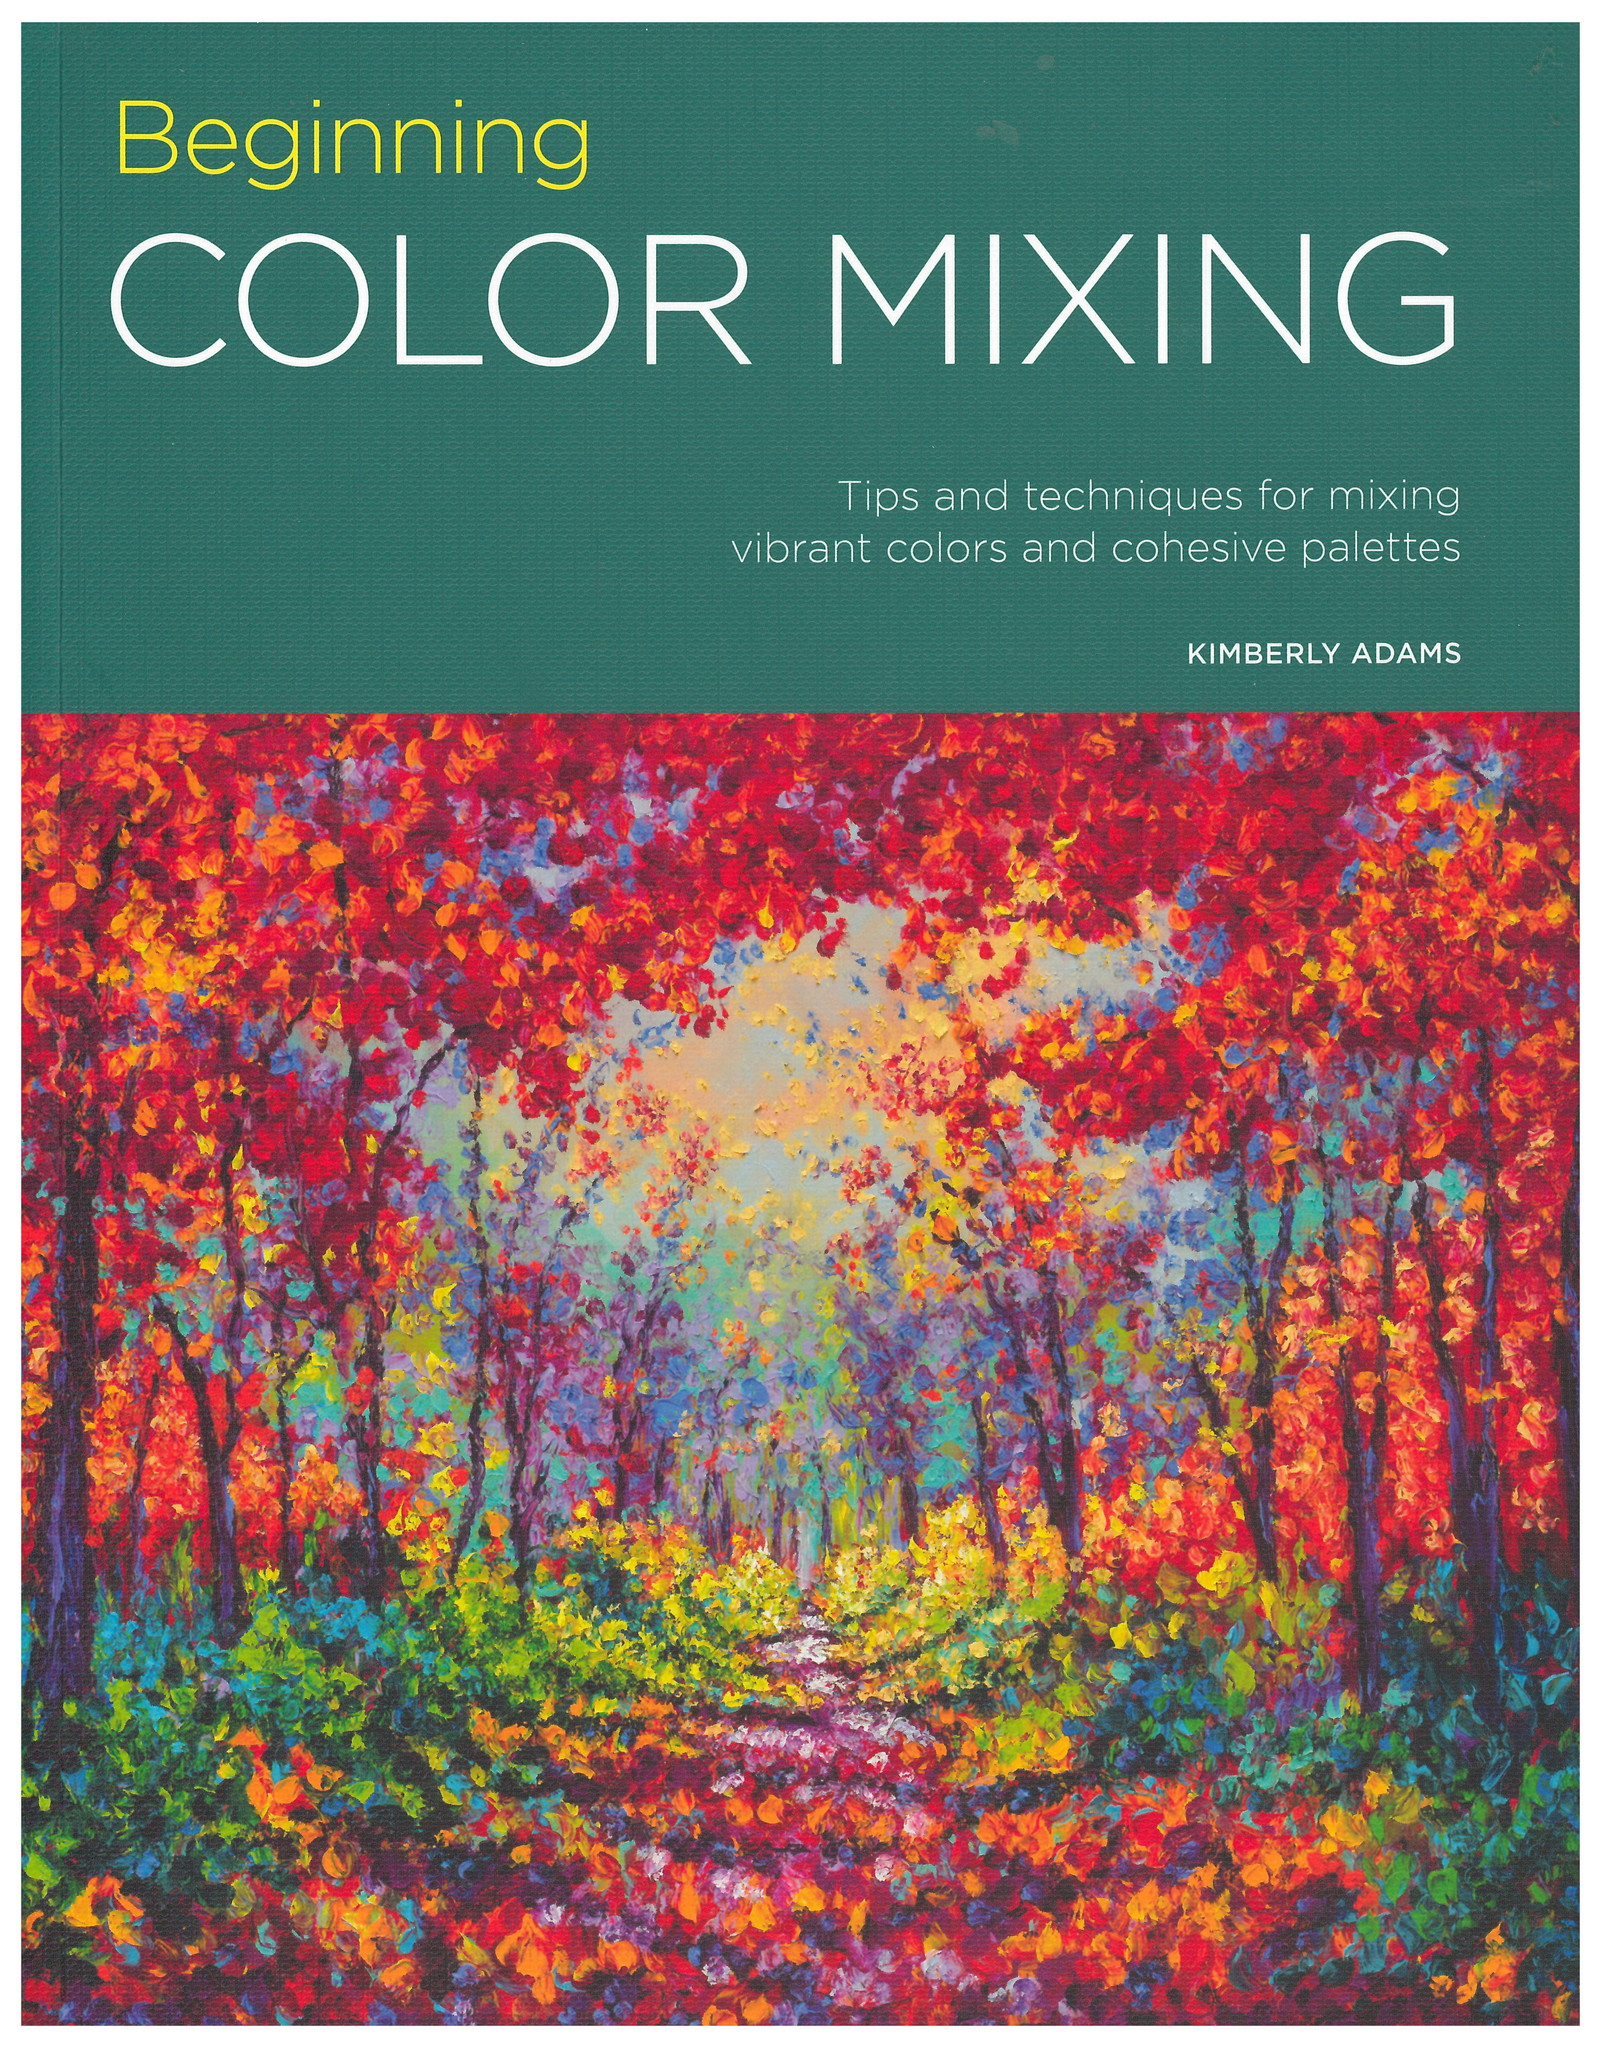 Portfolio: Beginning Color Mixing: Tips and Techniques for Mixing Vibrant Colors and Cohesive Palettes / Walter Foster